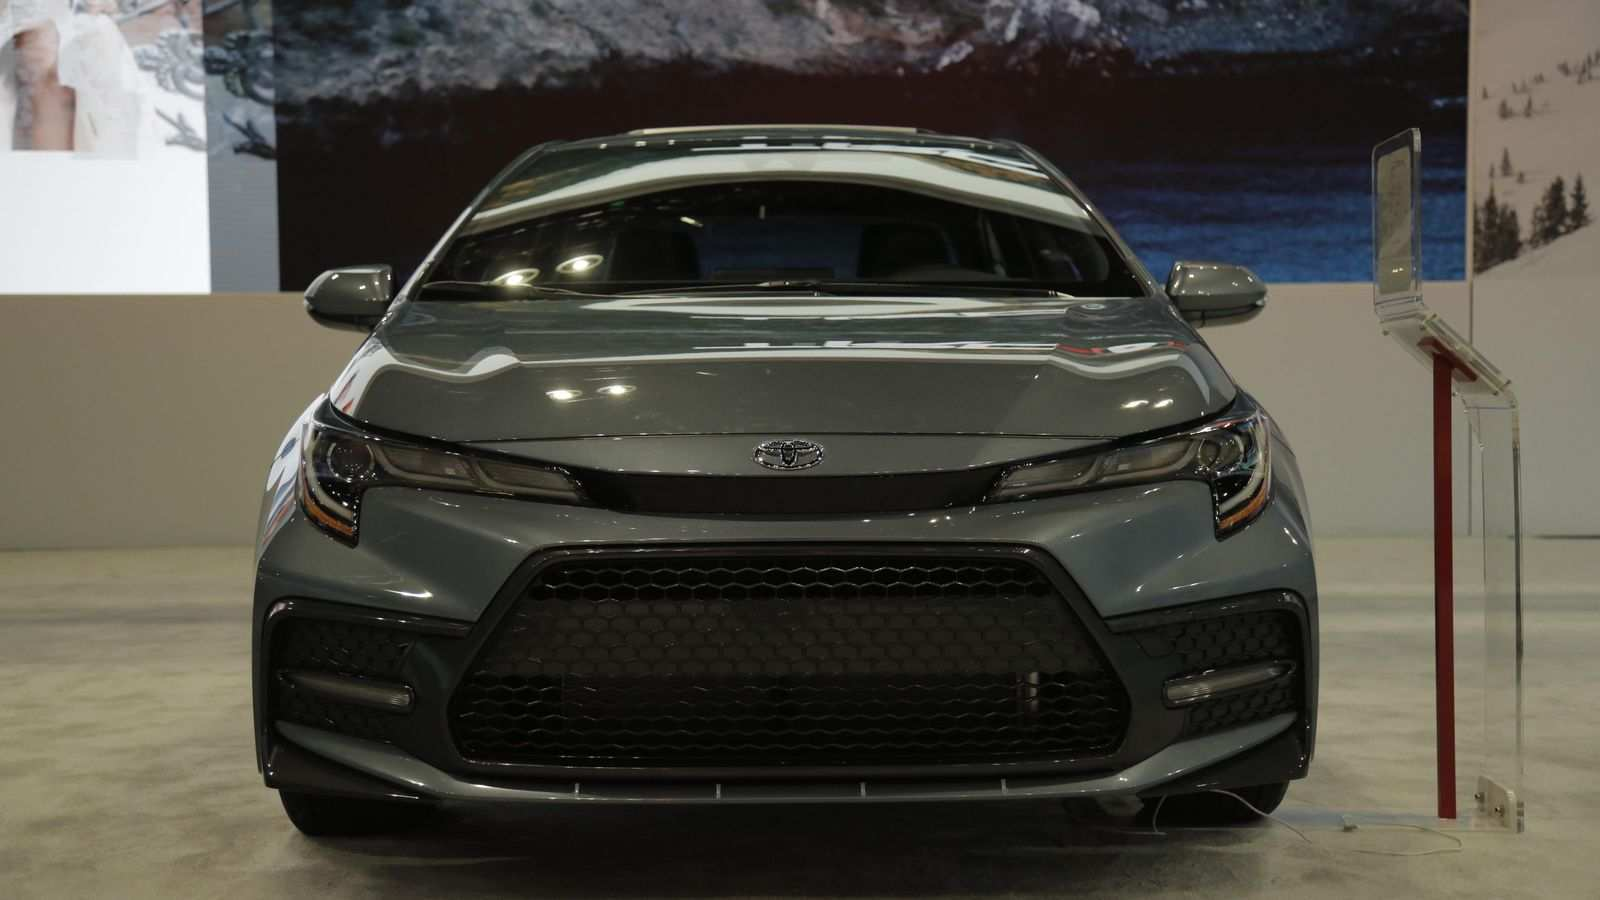 79 Gallery of 2020 Toyota Avensis Overview with 2020 Toyota Avensis